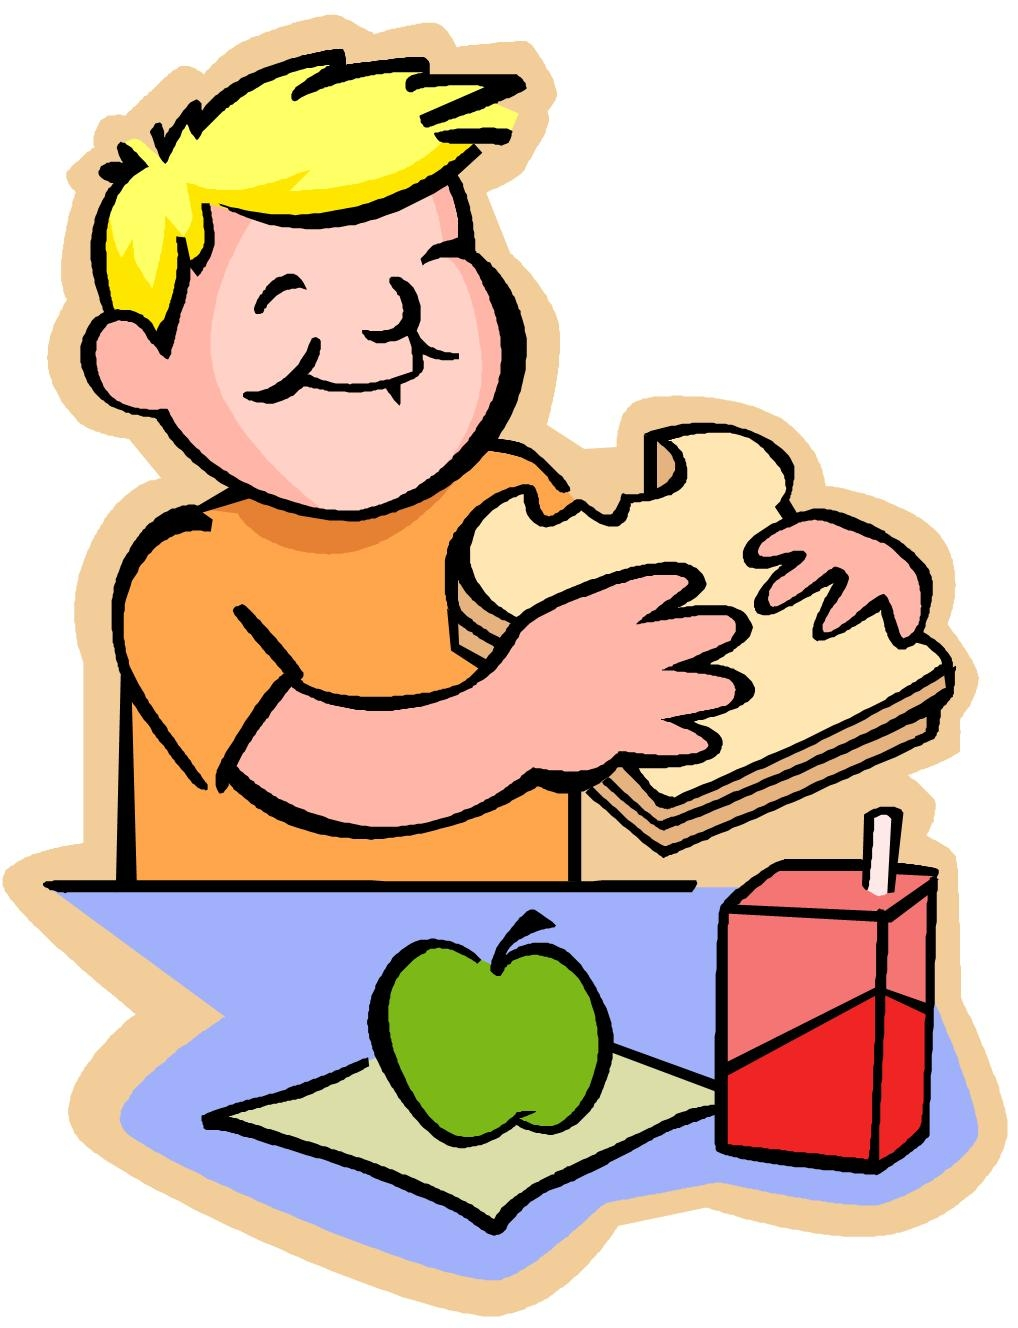 Eating clipart. At getdrawings com free